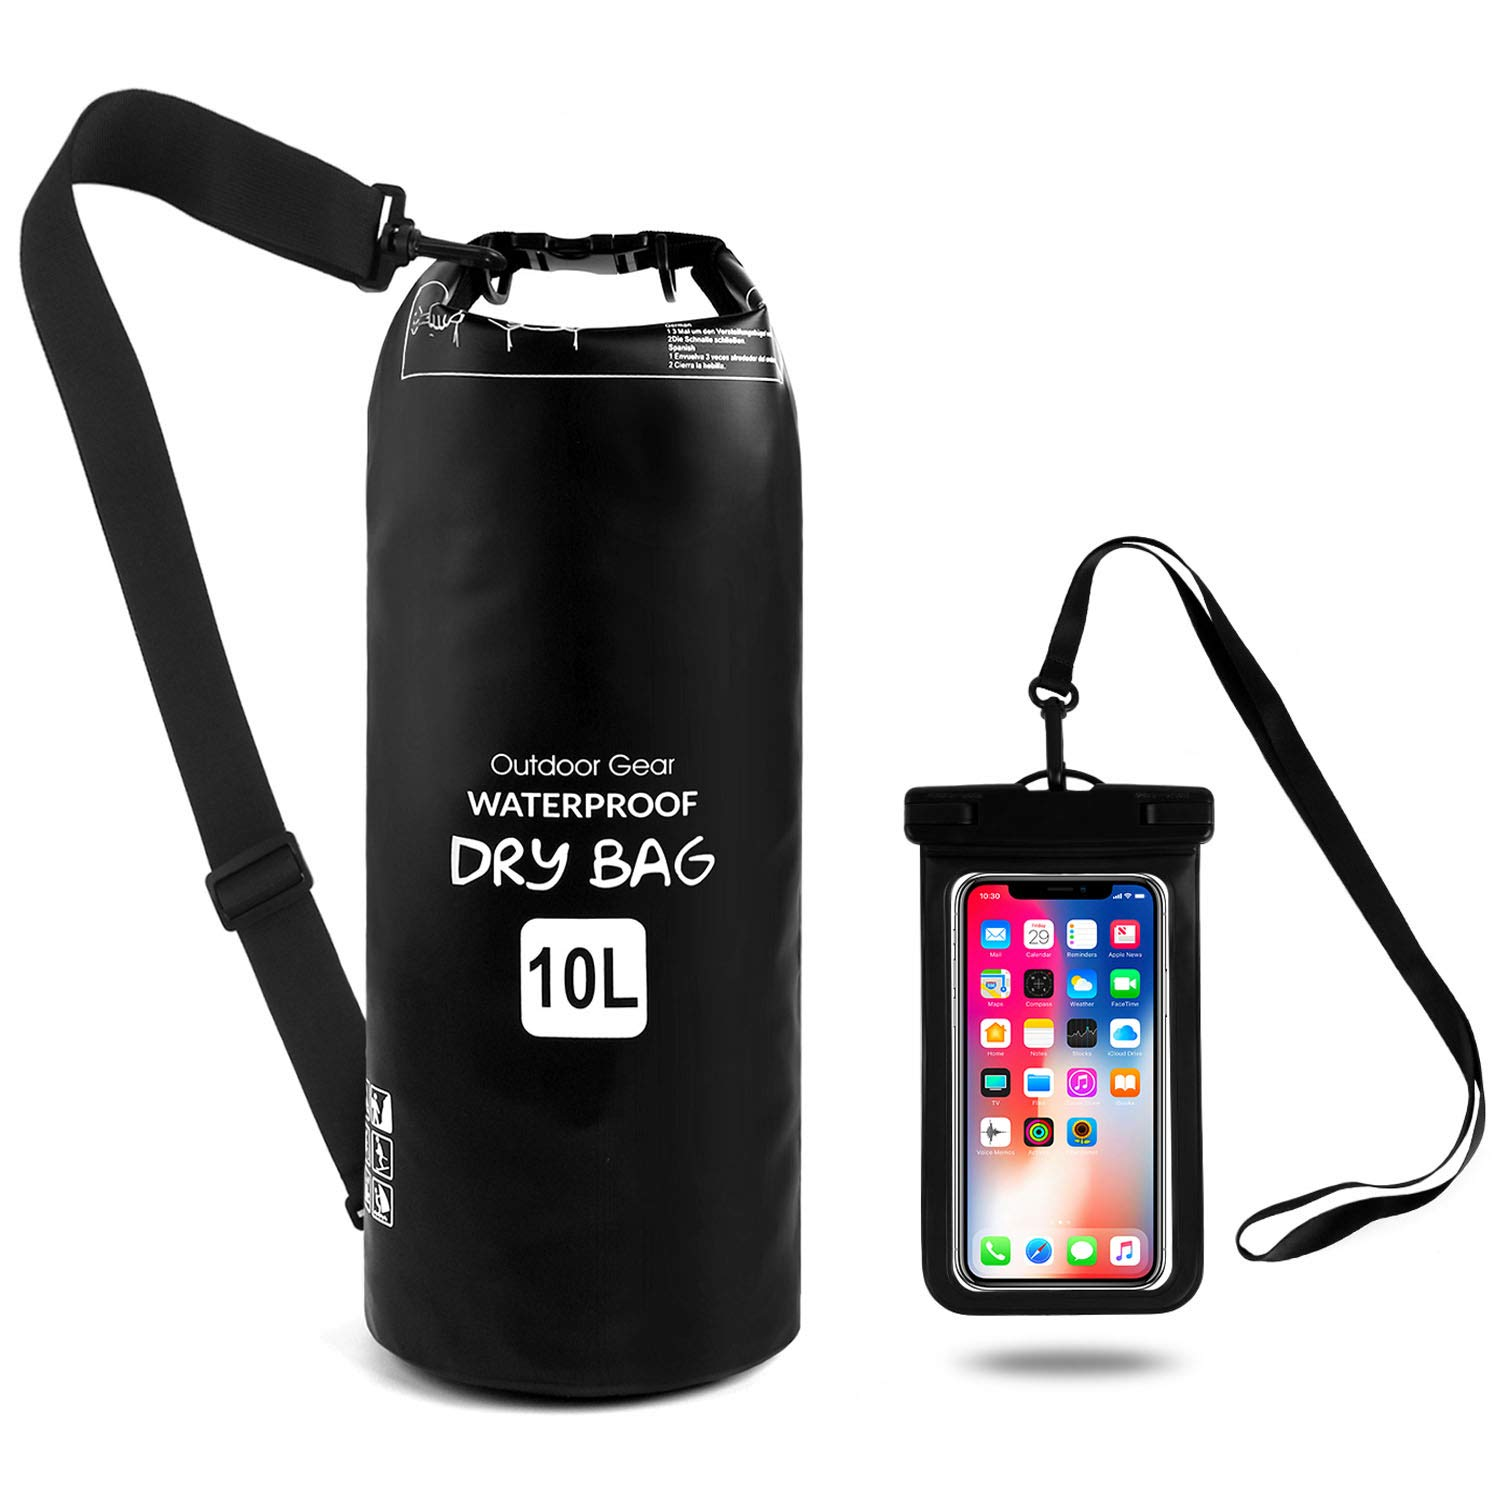 Waterproof Dry Bag Waterproof Phone Pouch, Roll Top Dry Compression Sack Keeps Gear Dry Sports Outdoors Suits for Swimming, Hiking, Climbing, Boating, Fishing by CASA CLAUSI.